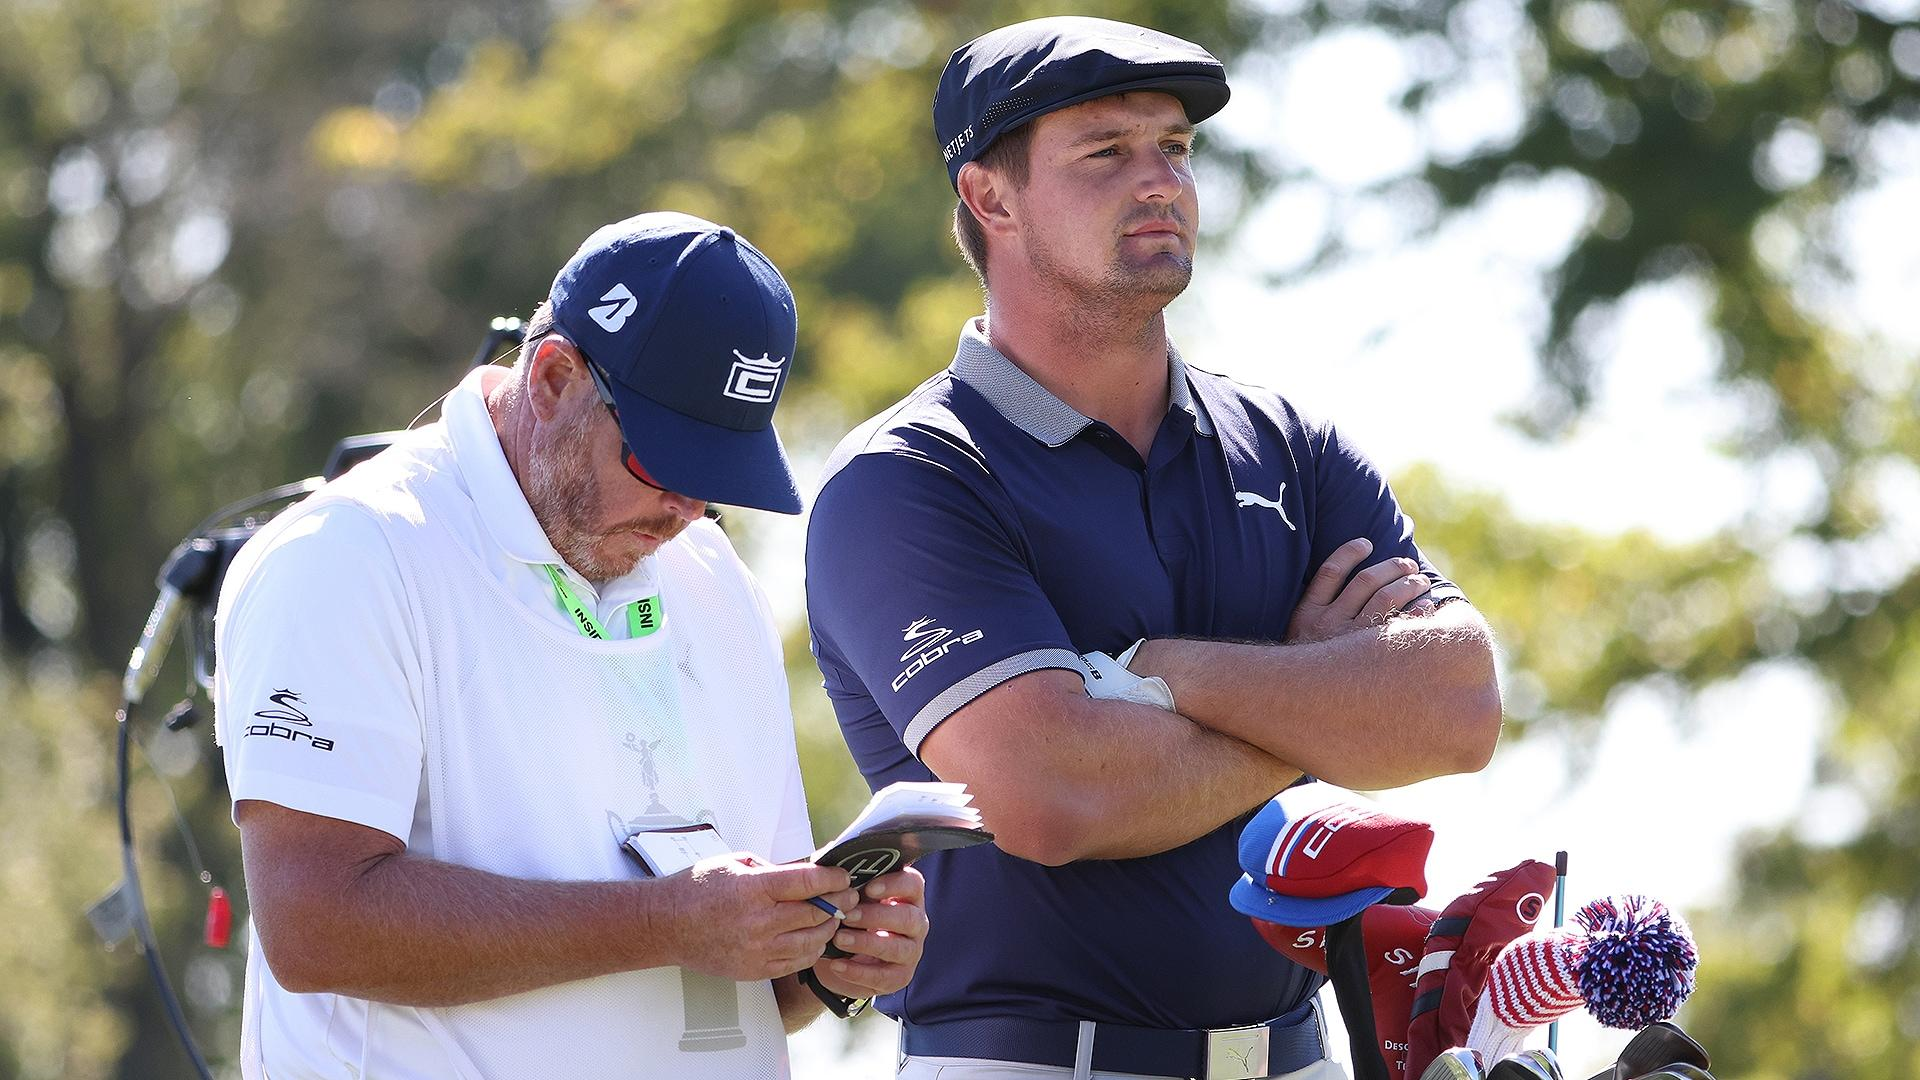 No fairways, no problem as DeChambeau continues to overpower Winged Foot